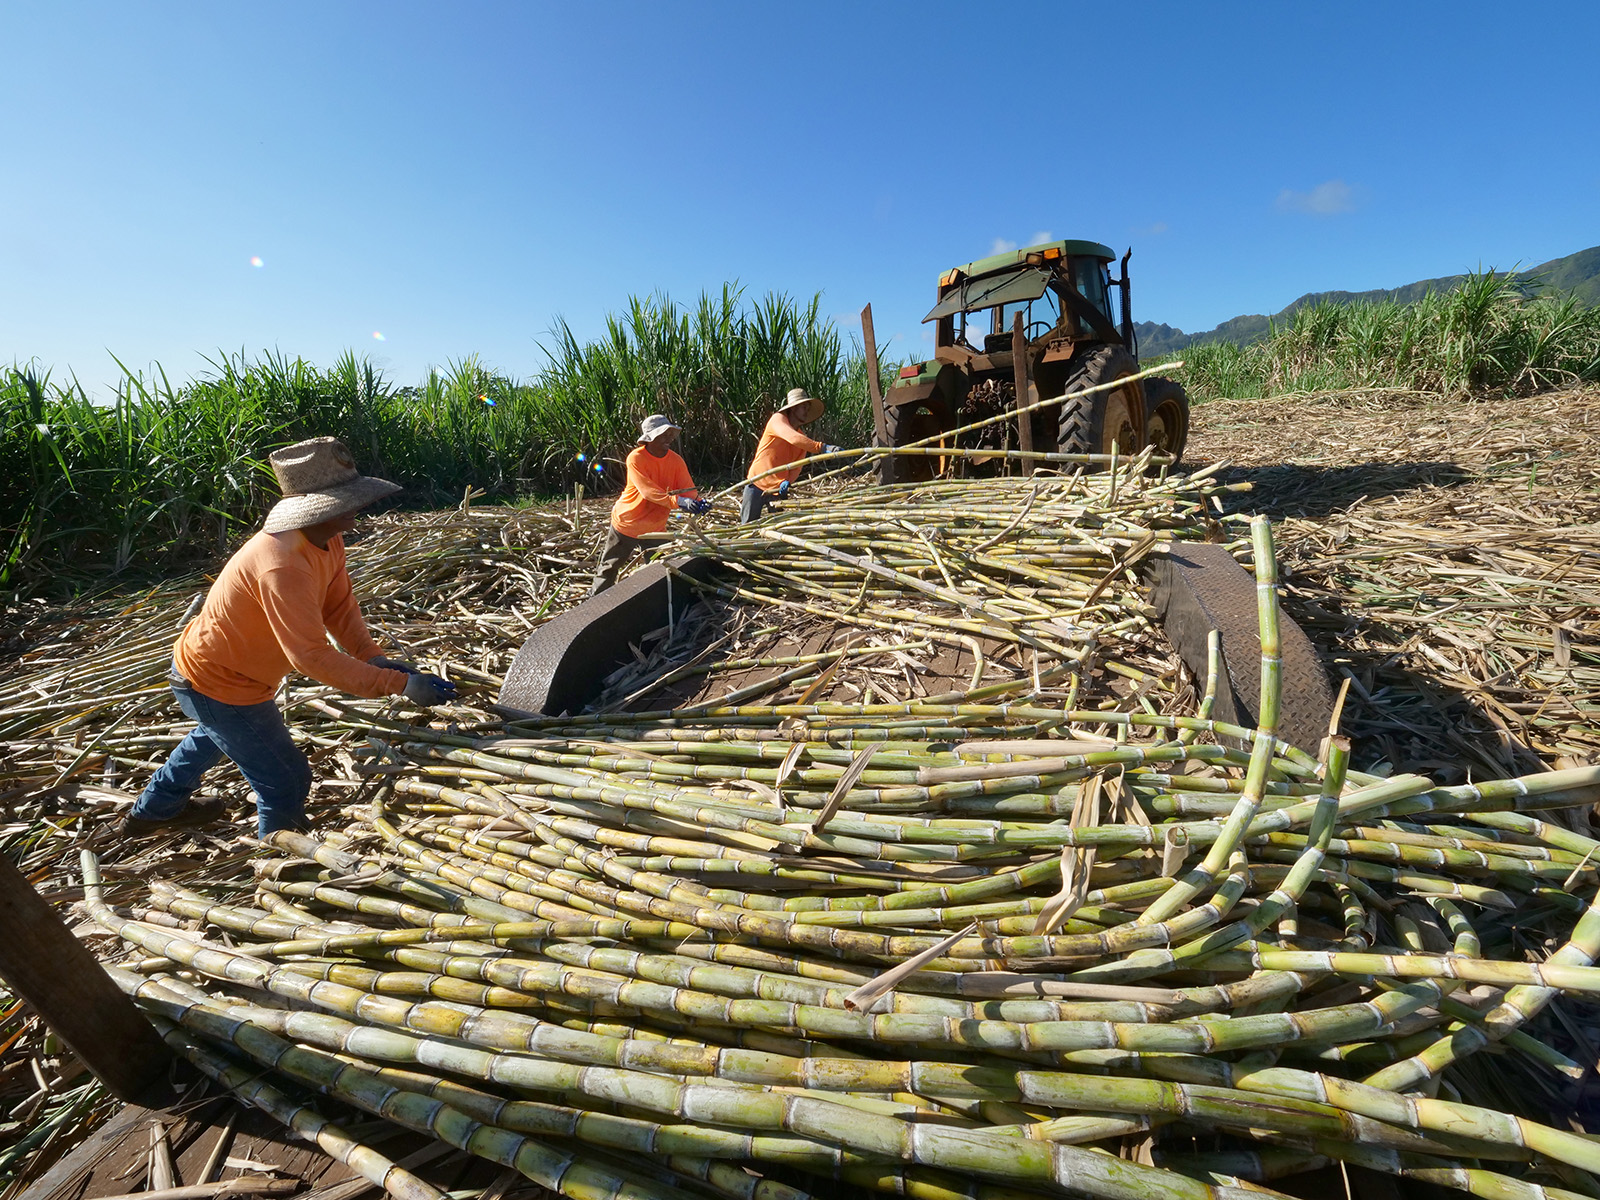 <p>Farmers load a tractor bed with freshly harvested sugar cane. Stripped leaves will be left in the field as compost, while the stalks are pressed into juice on site.</p> <p> </p>